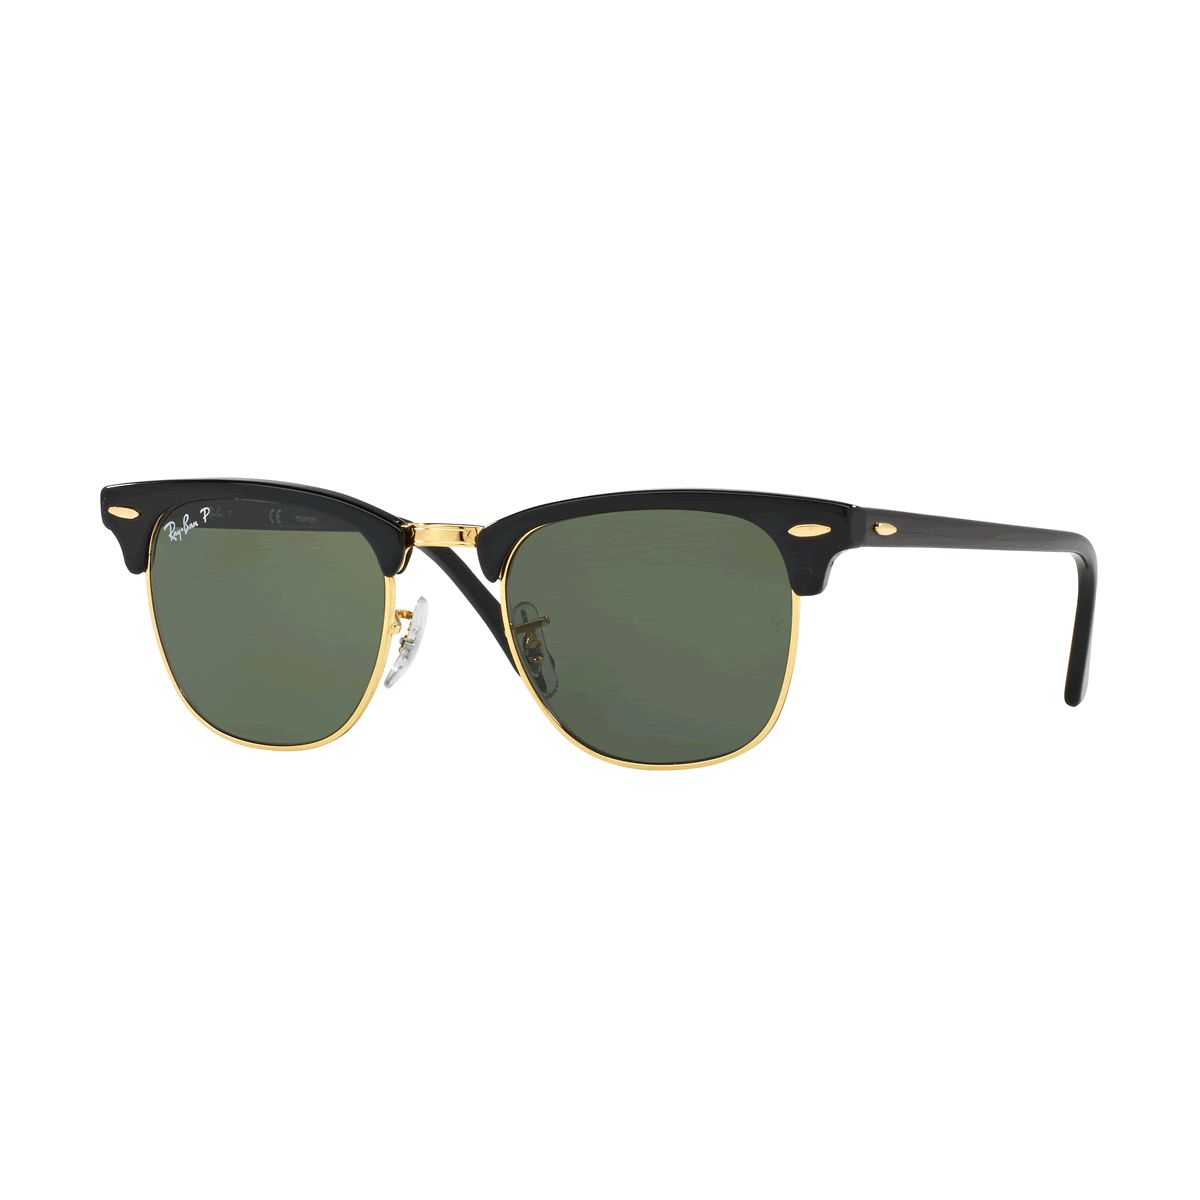 f5825f686c3 Ray-Ban Sunglasses - Mens   Womens Ray-Bans - Macy s